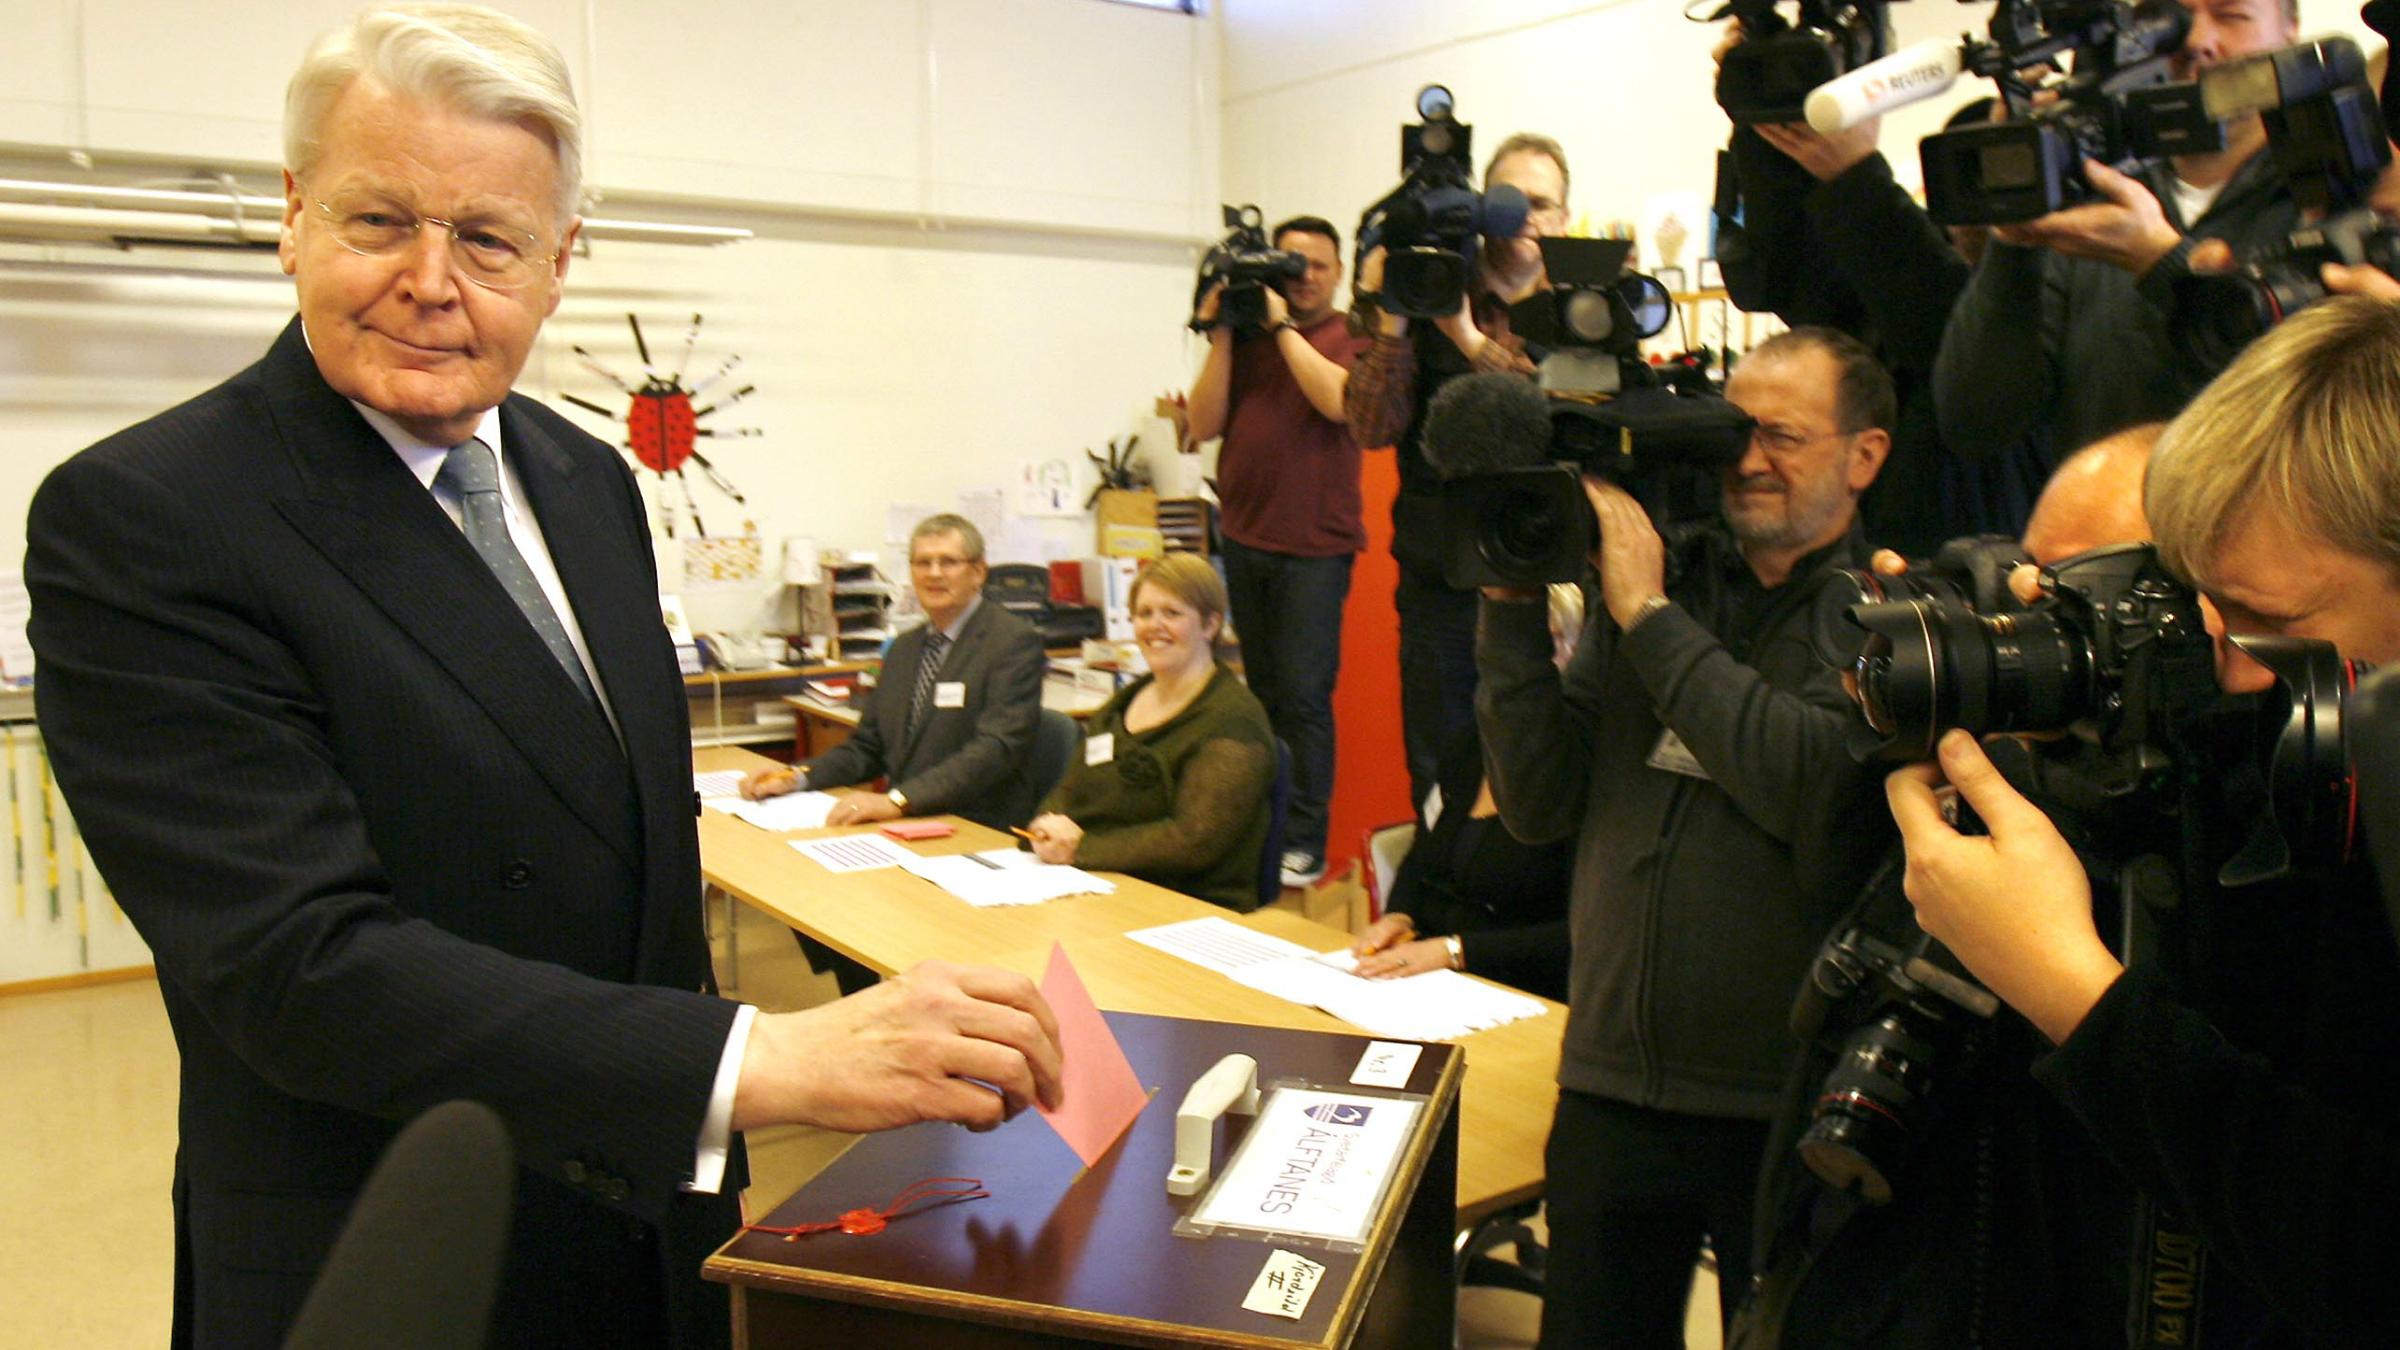 """President of Iceland Ólafur Ragnar Grímsson casts his ballot in Reykjavik, Iceland, Saturday, March 6 2010. Icelanders are voting in a nationwide referendum on approving the use of taxpayers' money to repay international debts. Opinion polls suggest that a majority of Icelanders will vote """"no"""" on Saturday to the $5.3 billion deal to compensate Britain and the Netherlands for deposits lost in a collapsed Icelandic bank. That is expected to complicate Iceland's effort to recover from a deep recession and a banking collapse. (AP Photo/Brynjar Gauti)"""